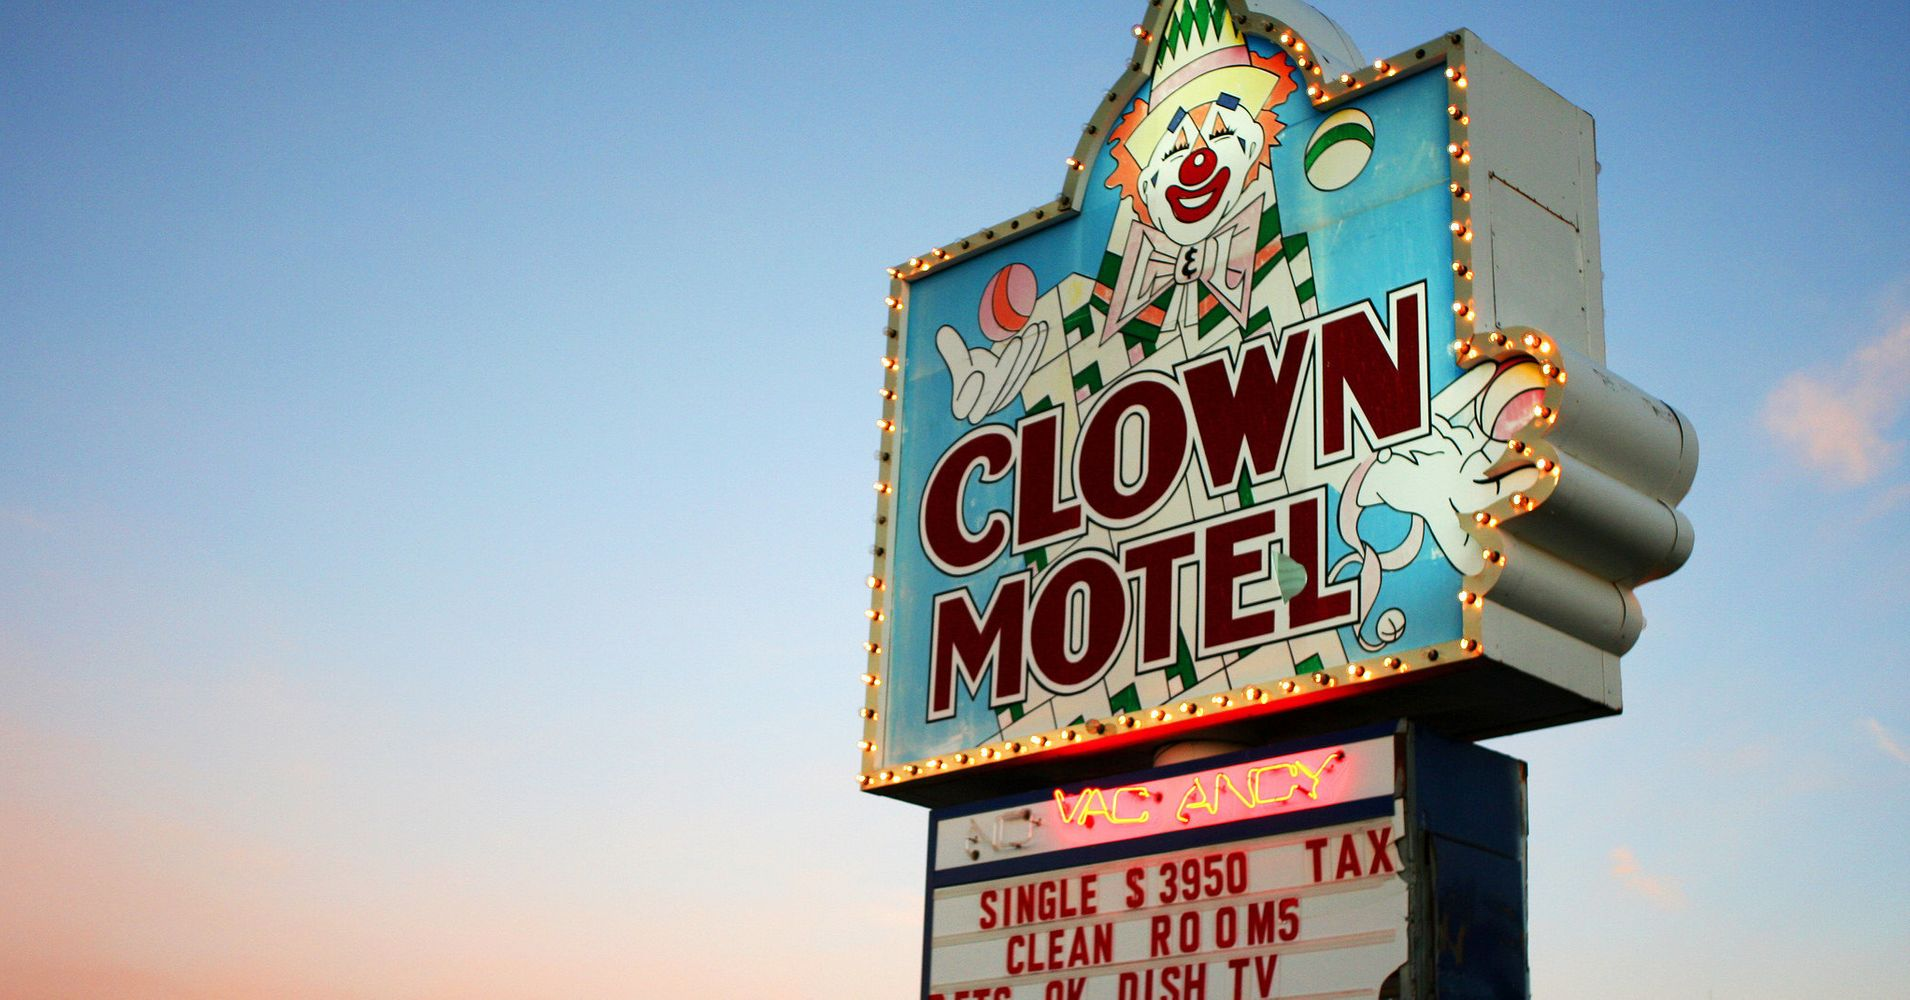 This Creepy Clown Motel Can Now Be Yours Huffpost